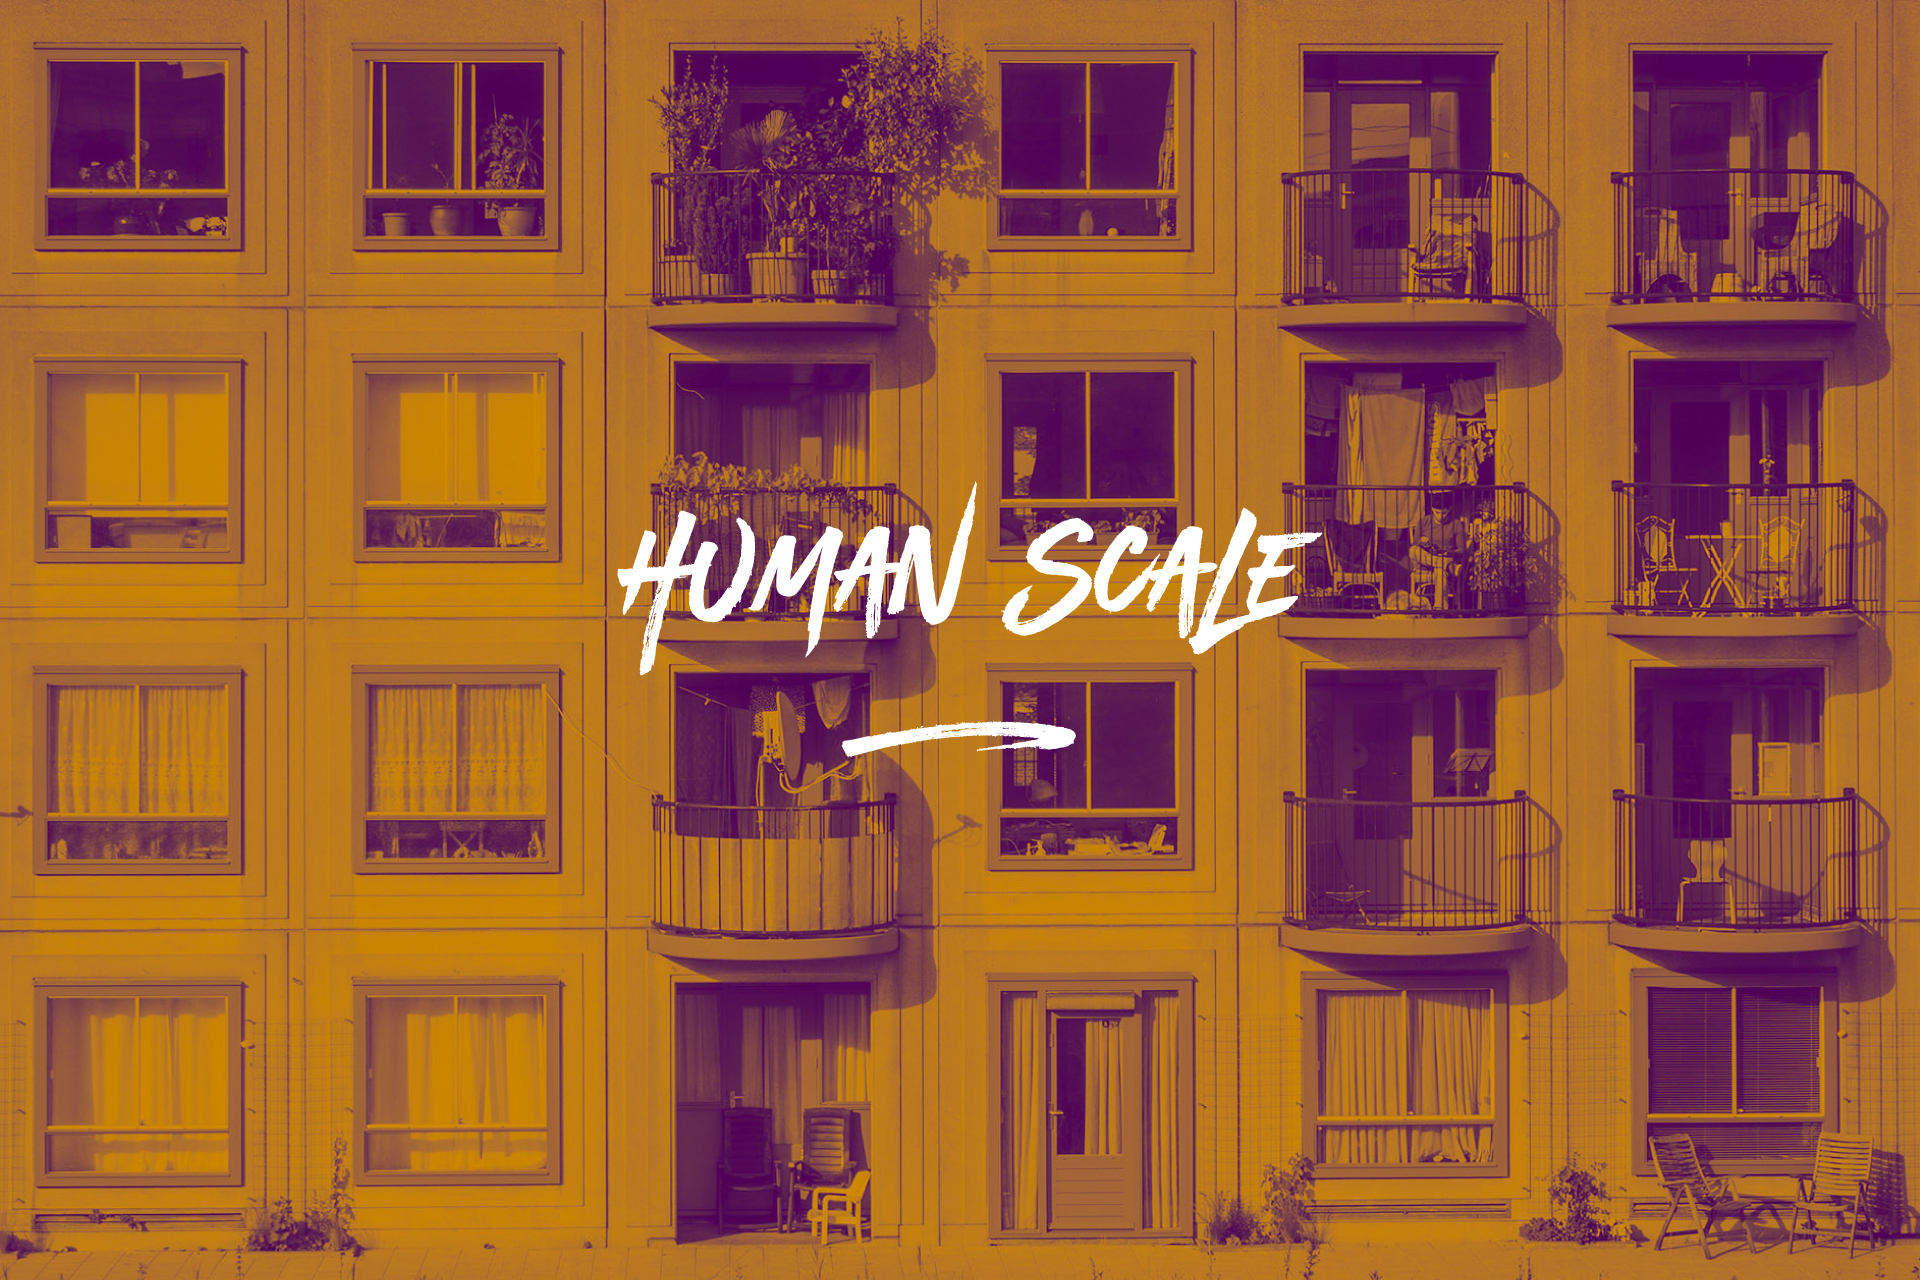 The world is moving towards mega-cities, business monopoles and an overall belief that bigger is better. We believe that there is human scale in everything. Something that works for people and feels reasonable for a society. We are  [  People-Centered] and believe in the  [  Human Scale  ] .